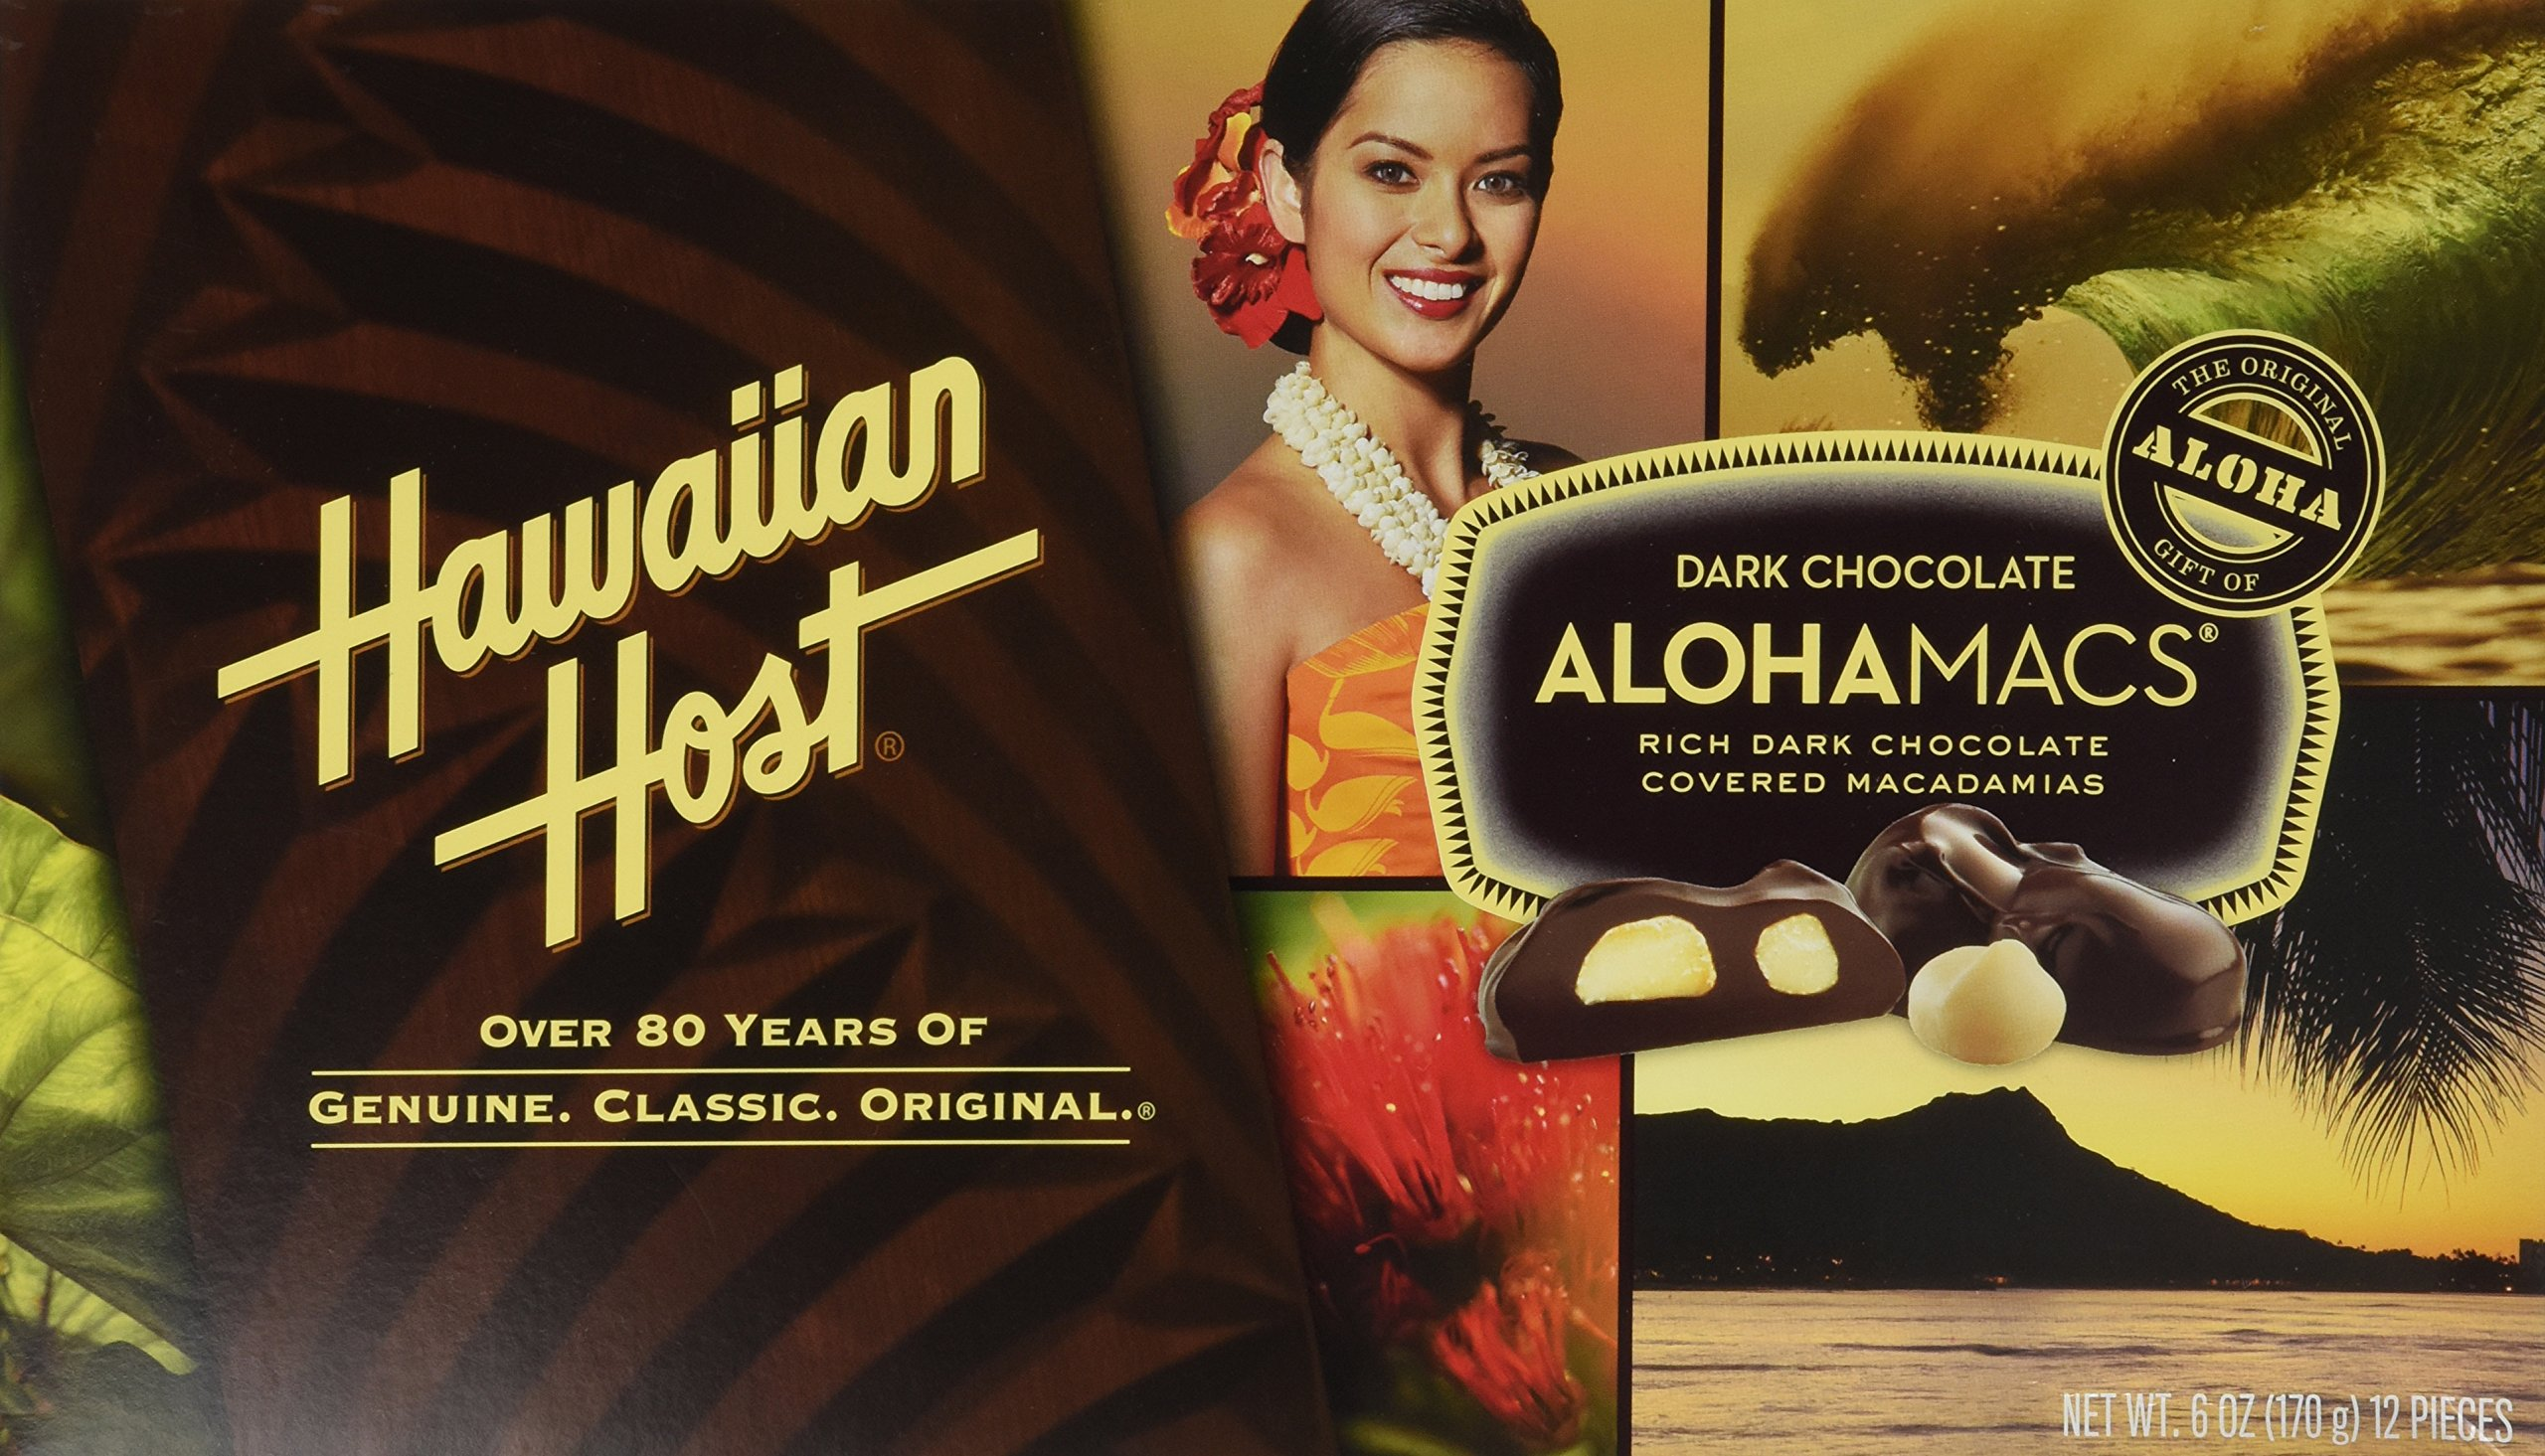 Hawaiian Host Alohamacs Dark Chocolate Covered Macadamia Nuts (1 Box) by Hawaiian Host